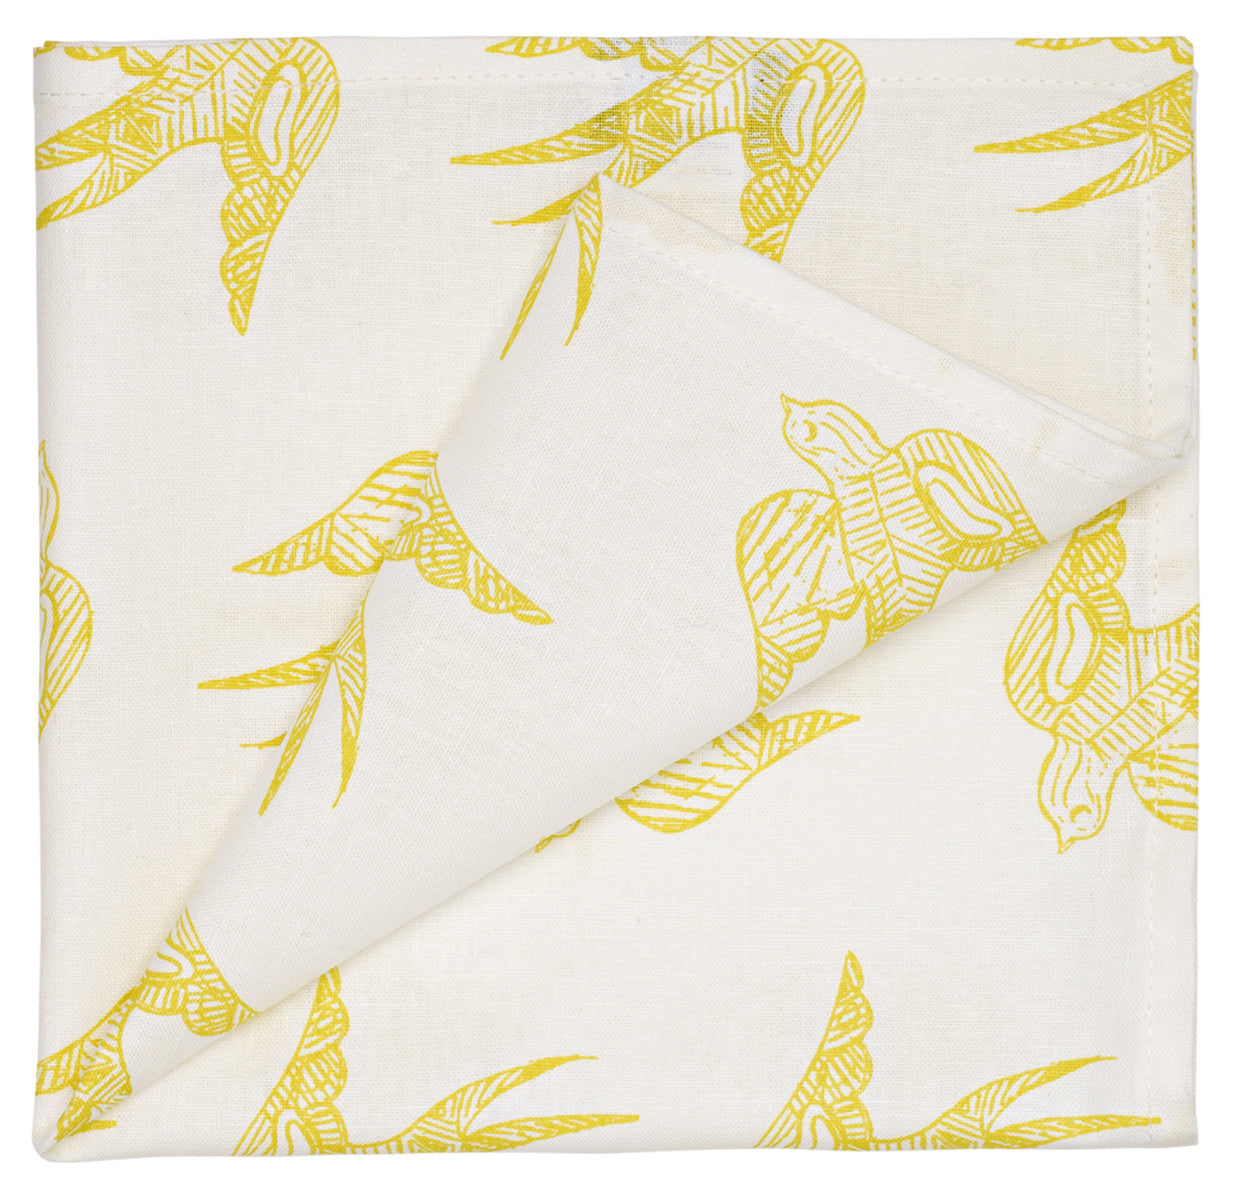 Katia Swallow Pattern Linen Napkins in Bright Maize Yellow